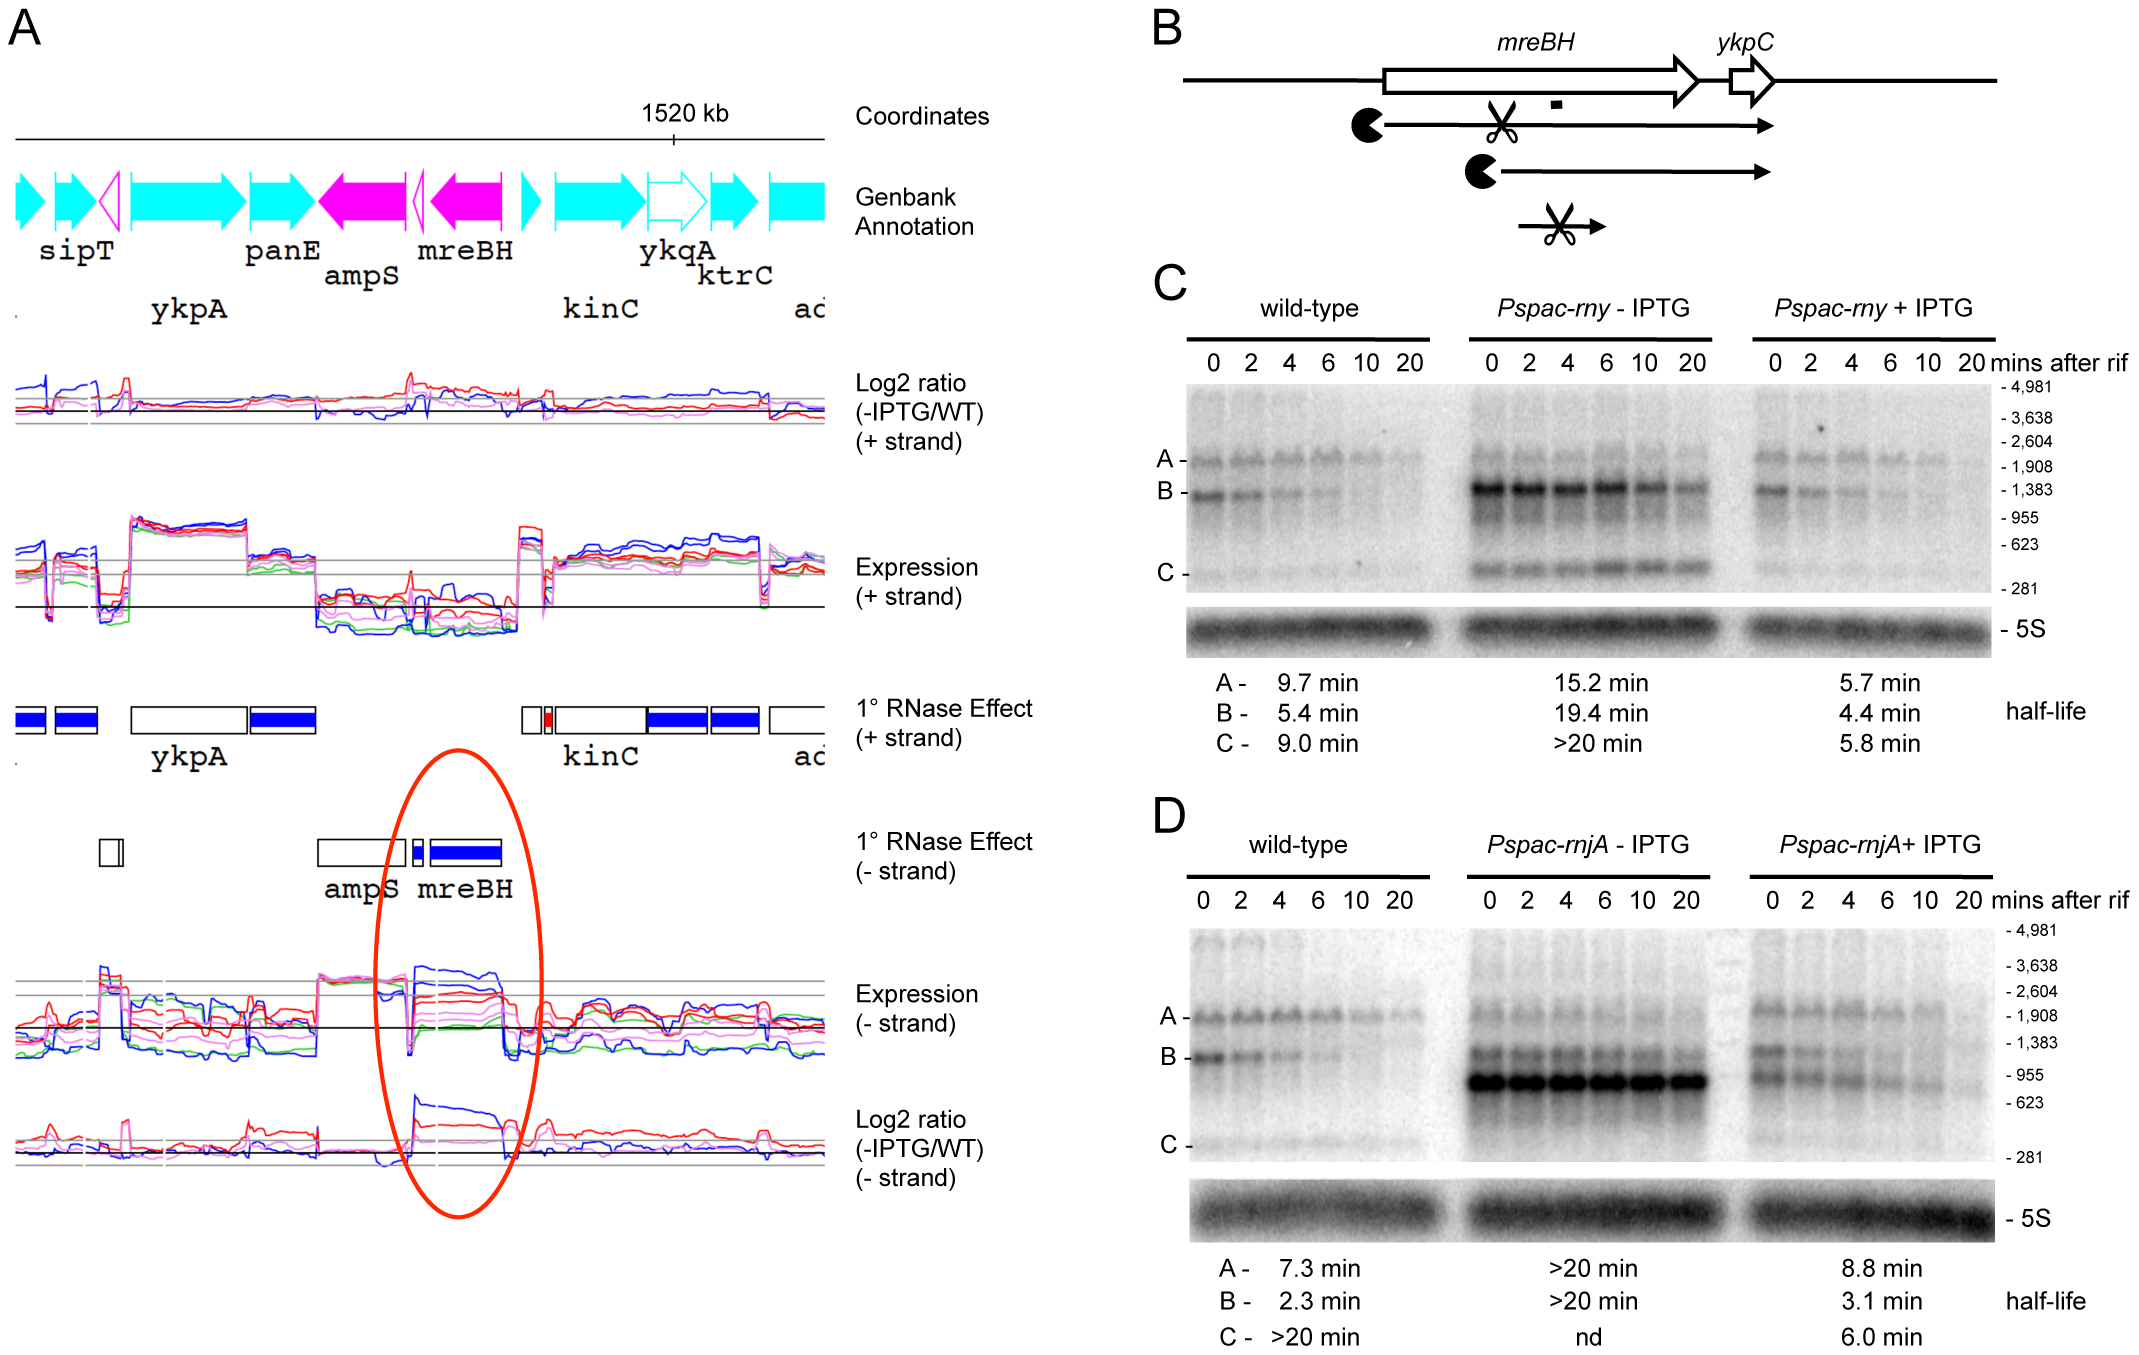 Degradation of the <i>mreBH ykpC</i> mRNA depends on both RNase Y and J1.